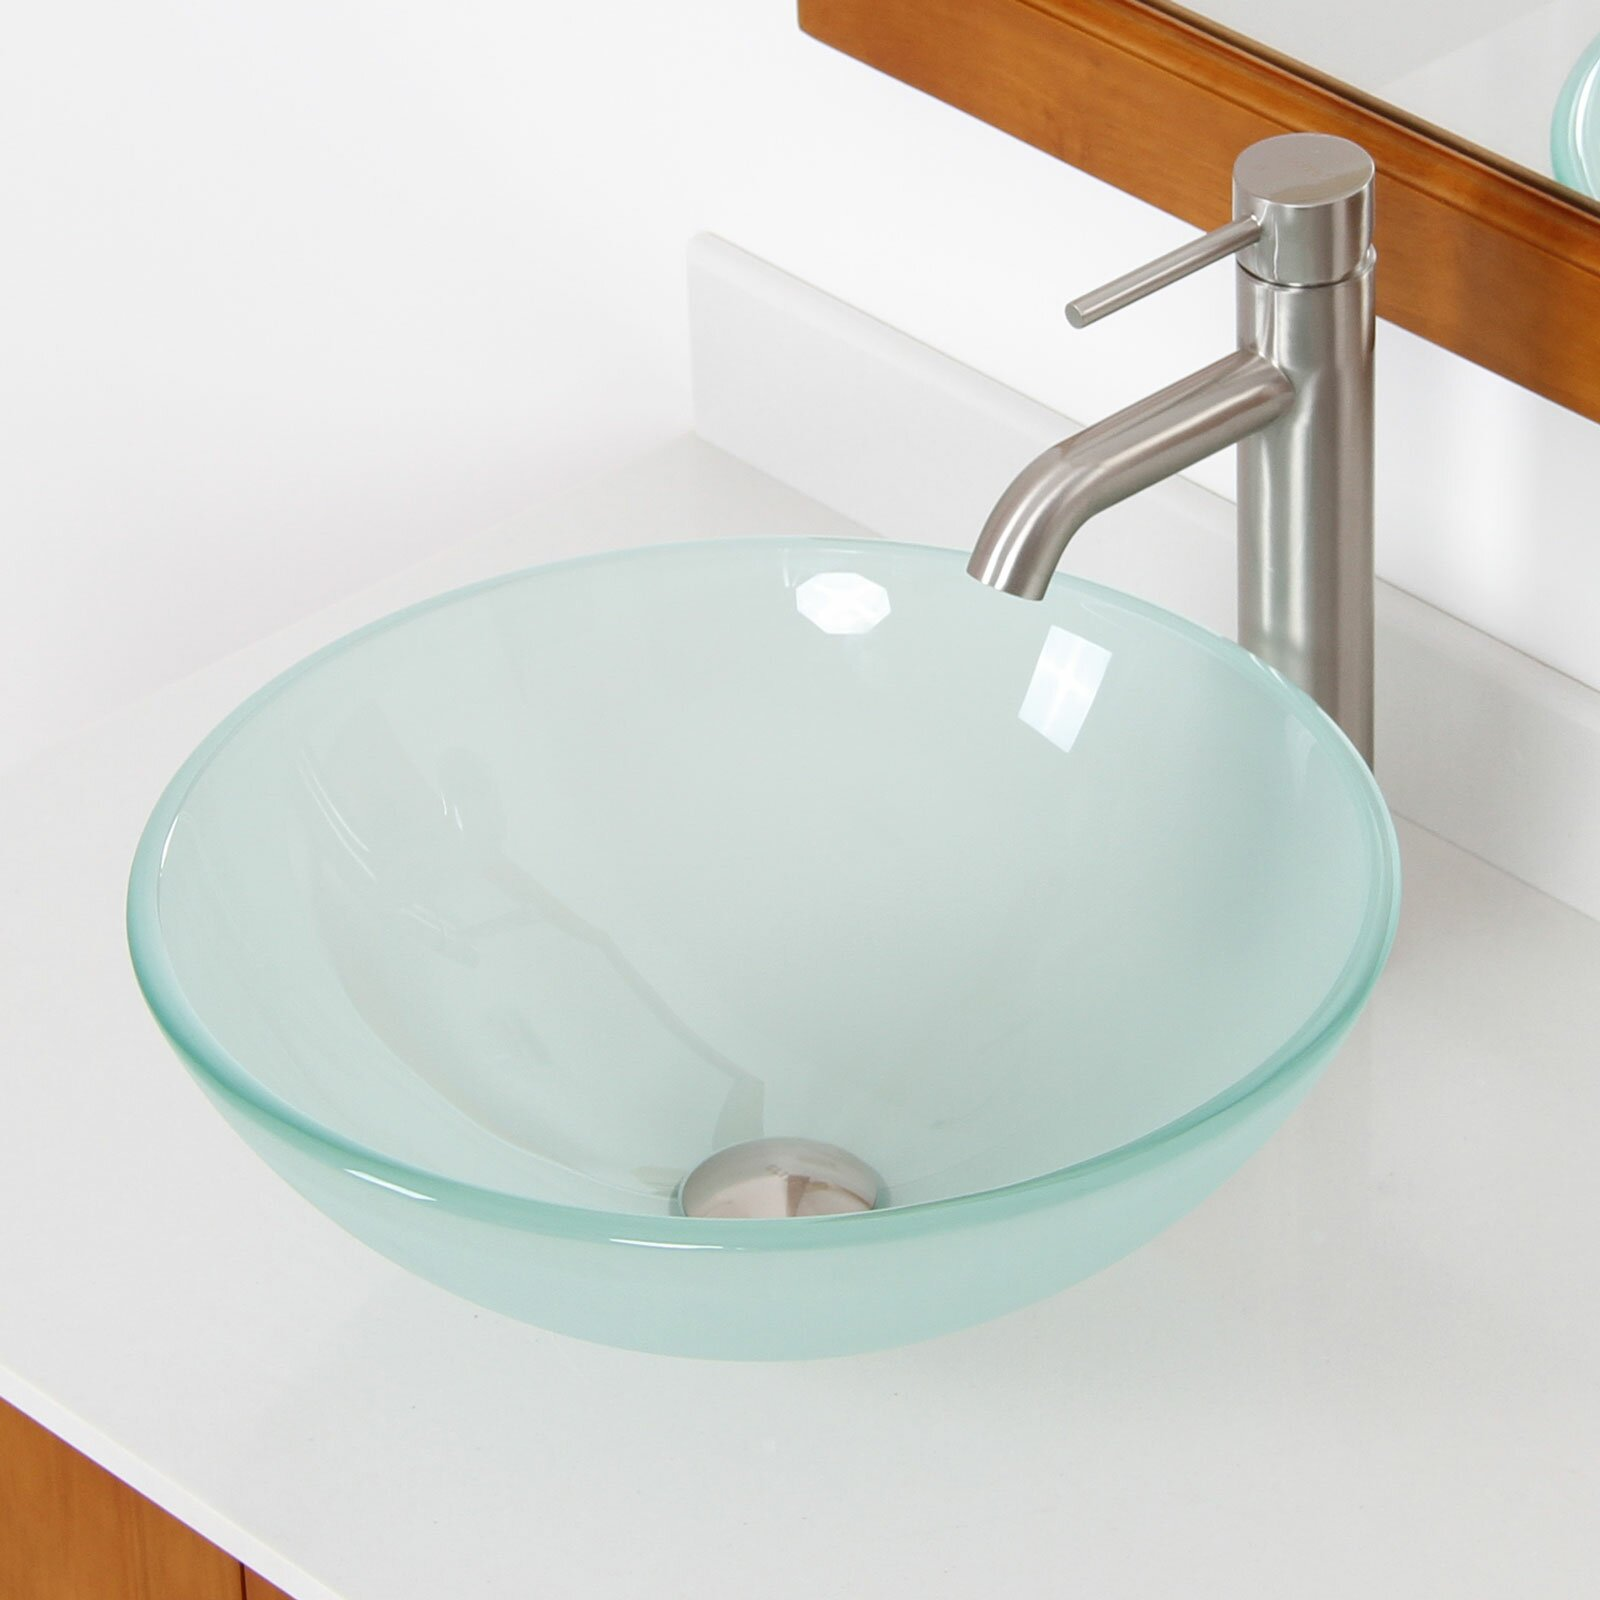 Elite Double Layered Tempered Glass Round Bowl Vessel Bathroom Sink Reviews Wayfair